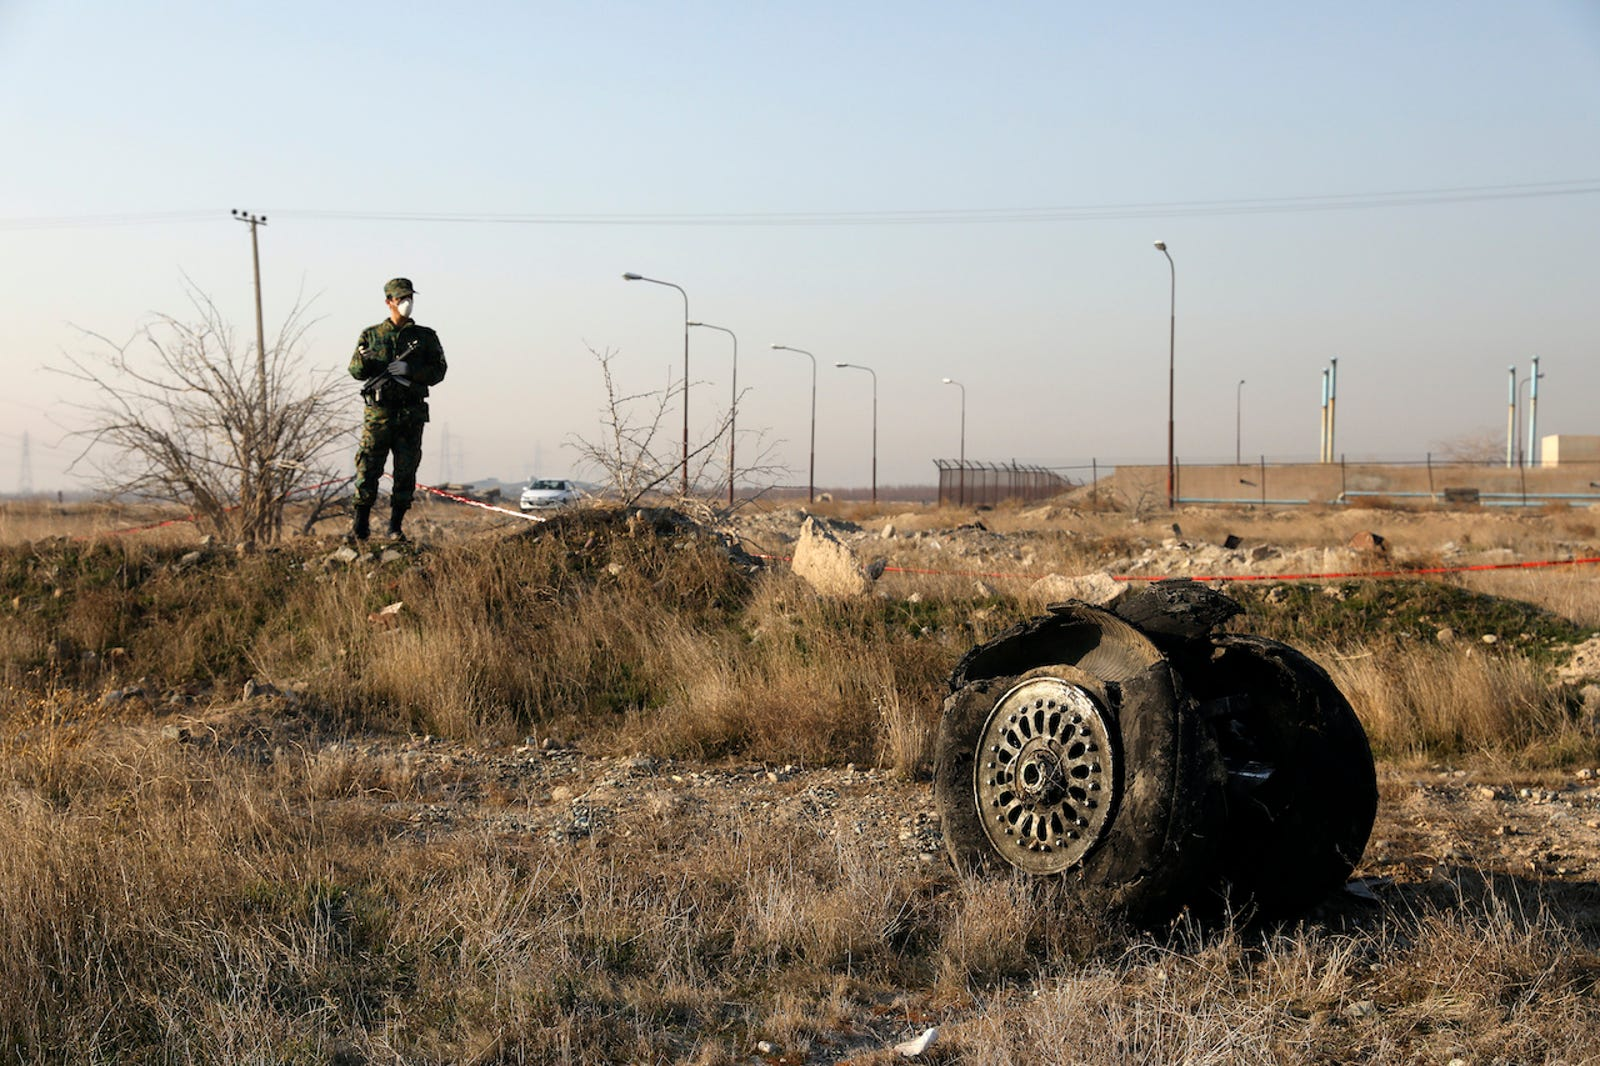 A police officer stands guard as debris is seen from an Ukrainian plane which crashed in Shahedshahr, southwest of the capital Tehran, Iran, Wednesday, Jan. 8, 2020.